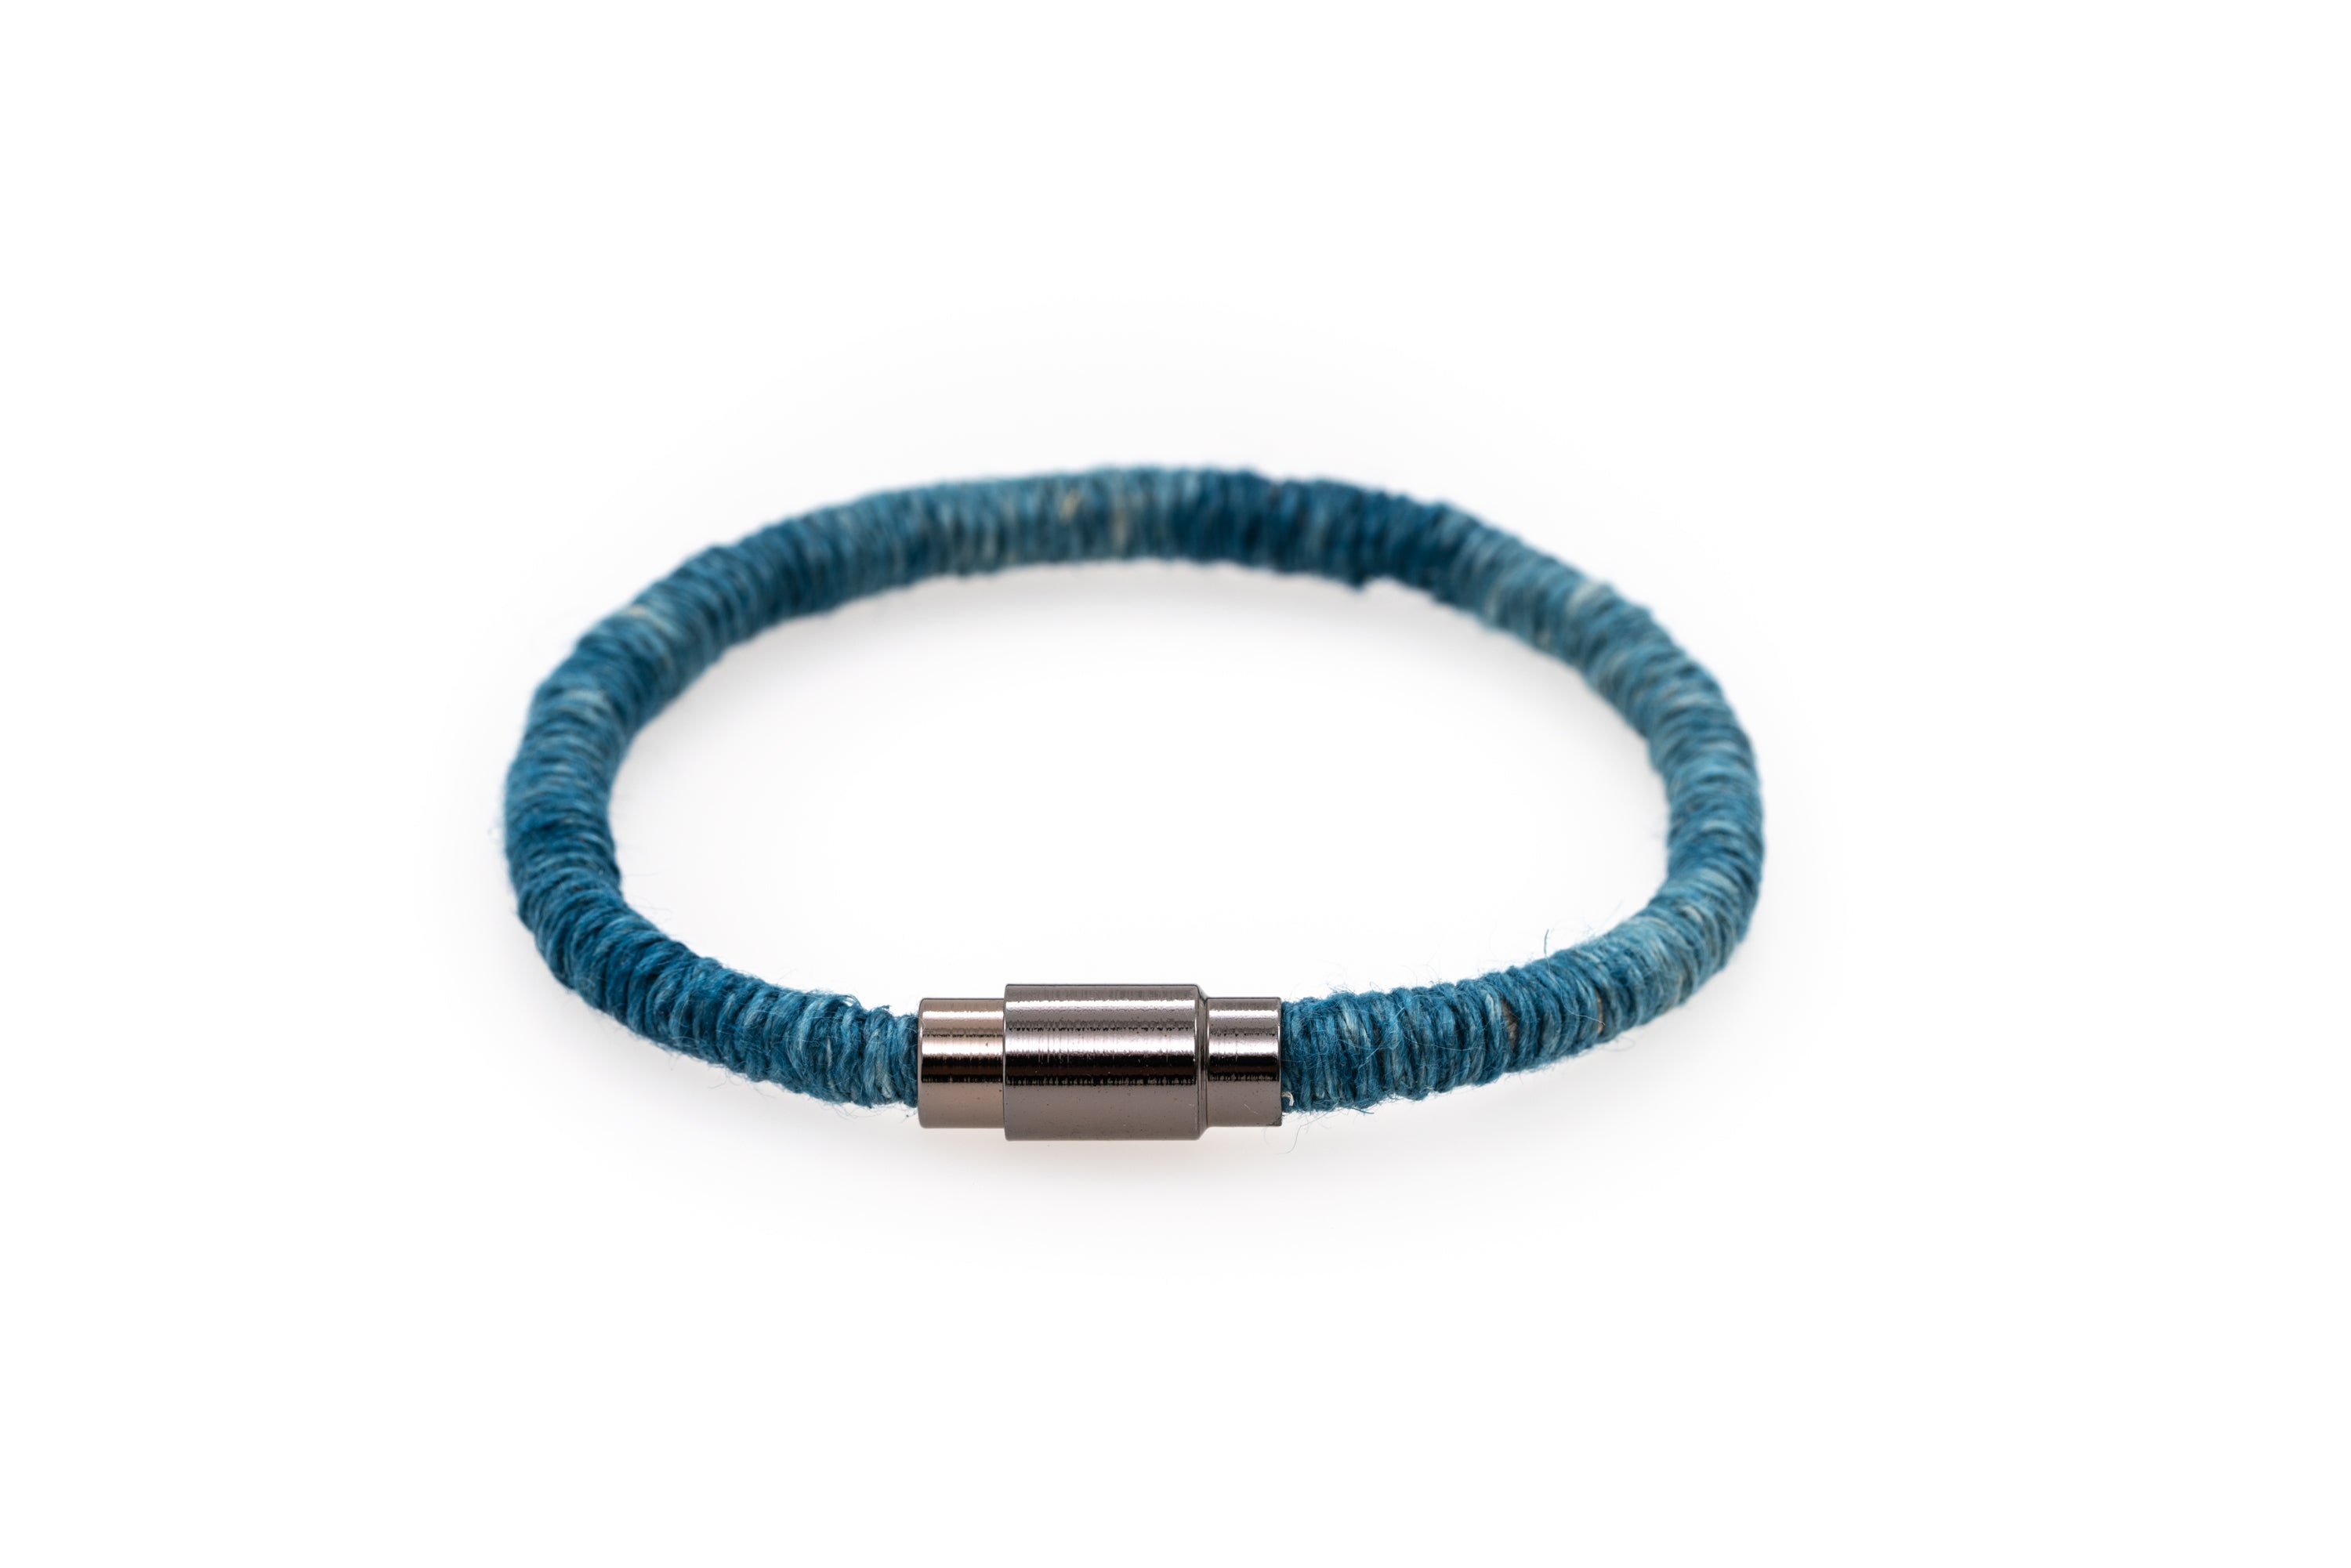 Fiber Art Jewelry Hemp Wrapped Bracelet Size L- Darker Blue / Antiquated Patina Plated Magnet